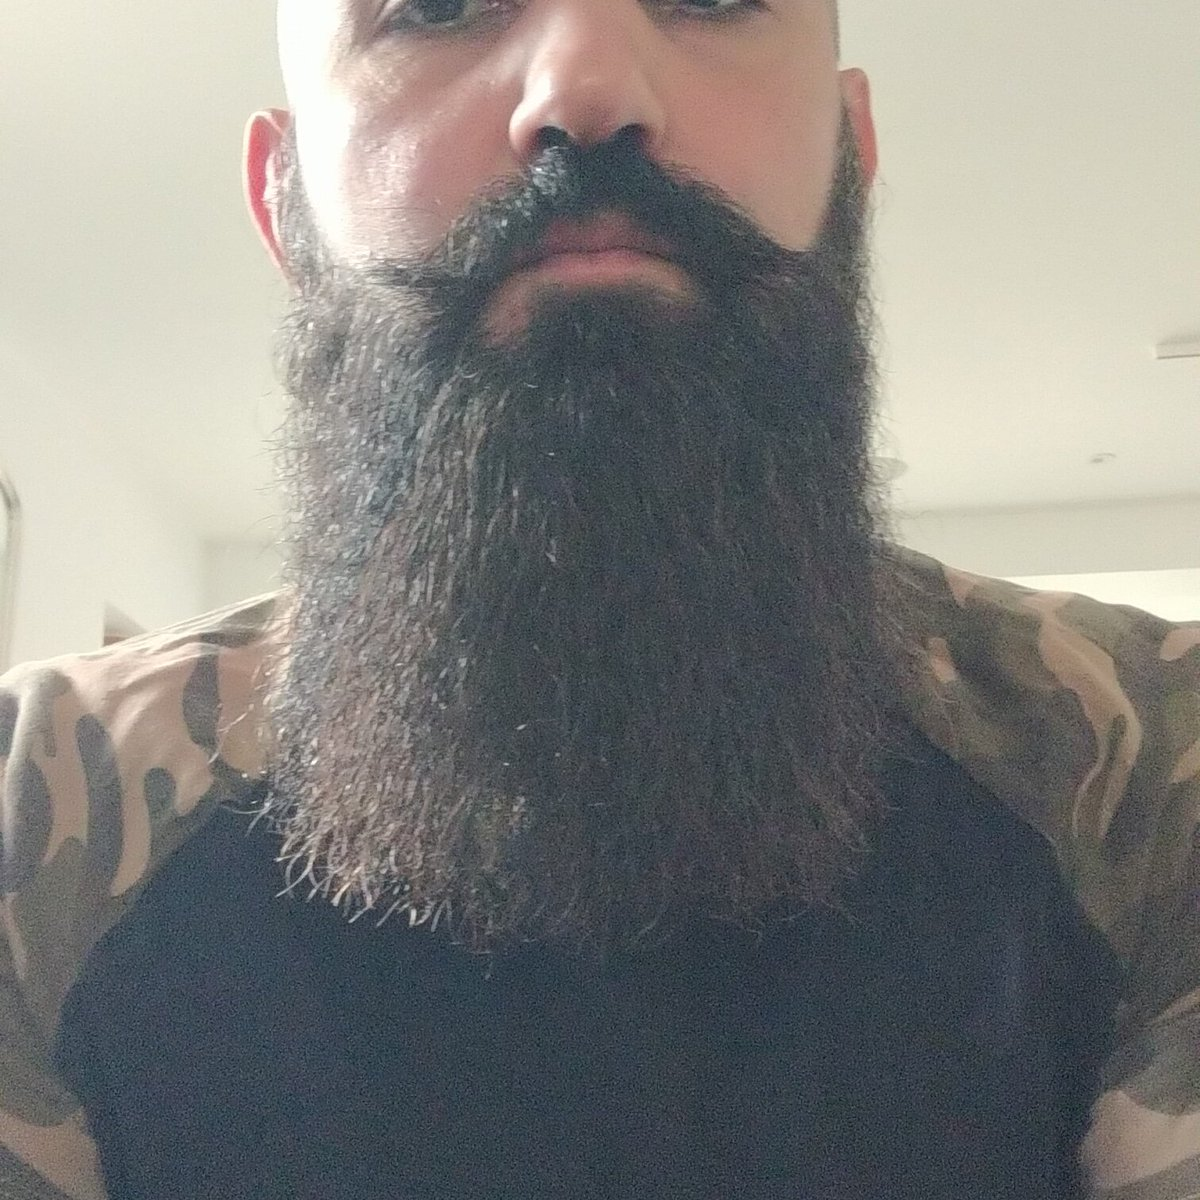 This is my dream. Am I getting there? #bearded pic.twitter.com/c81KvpZUIr